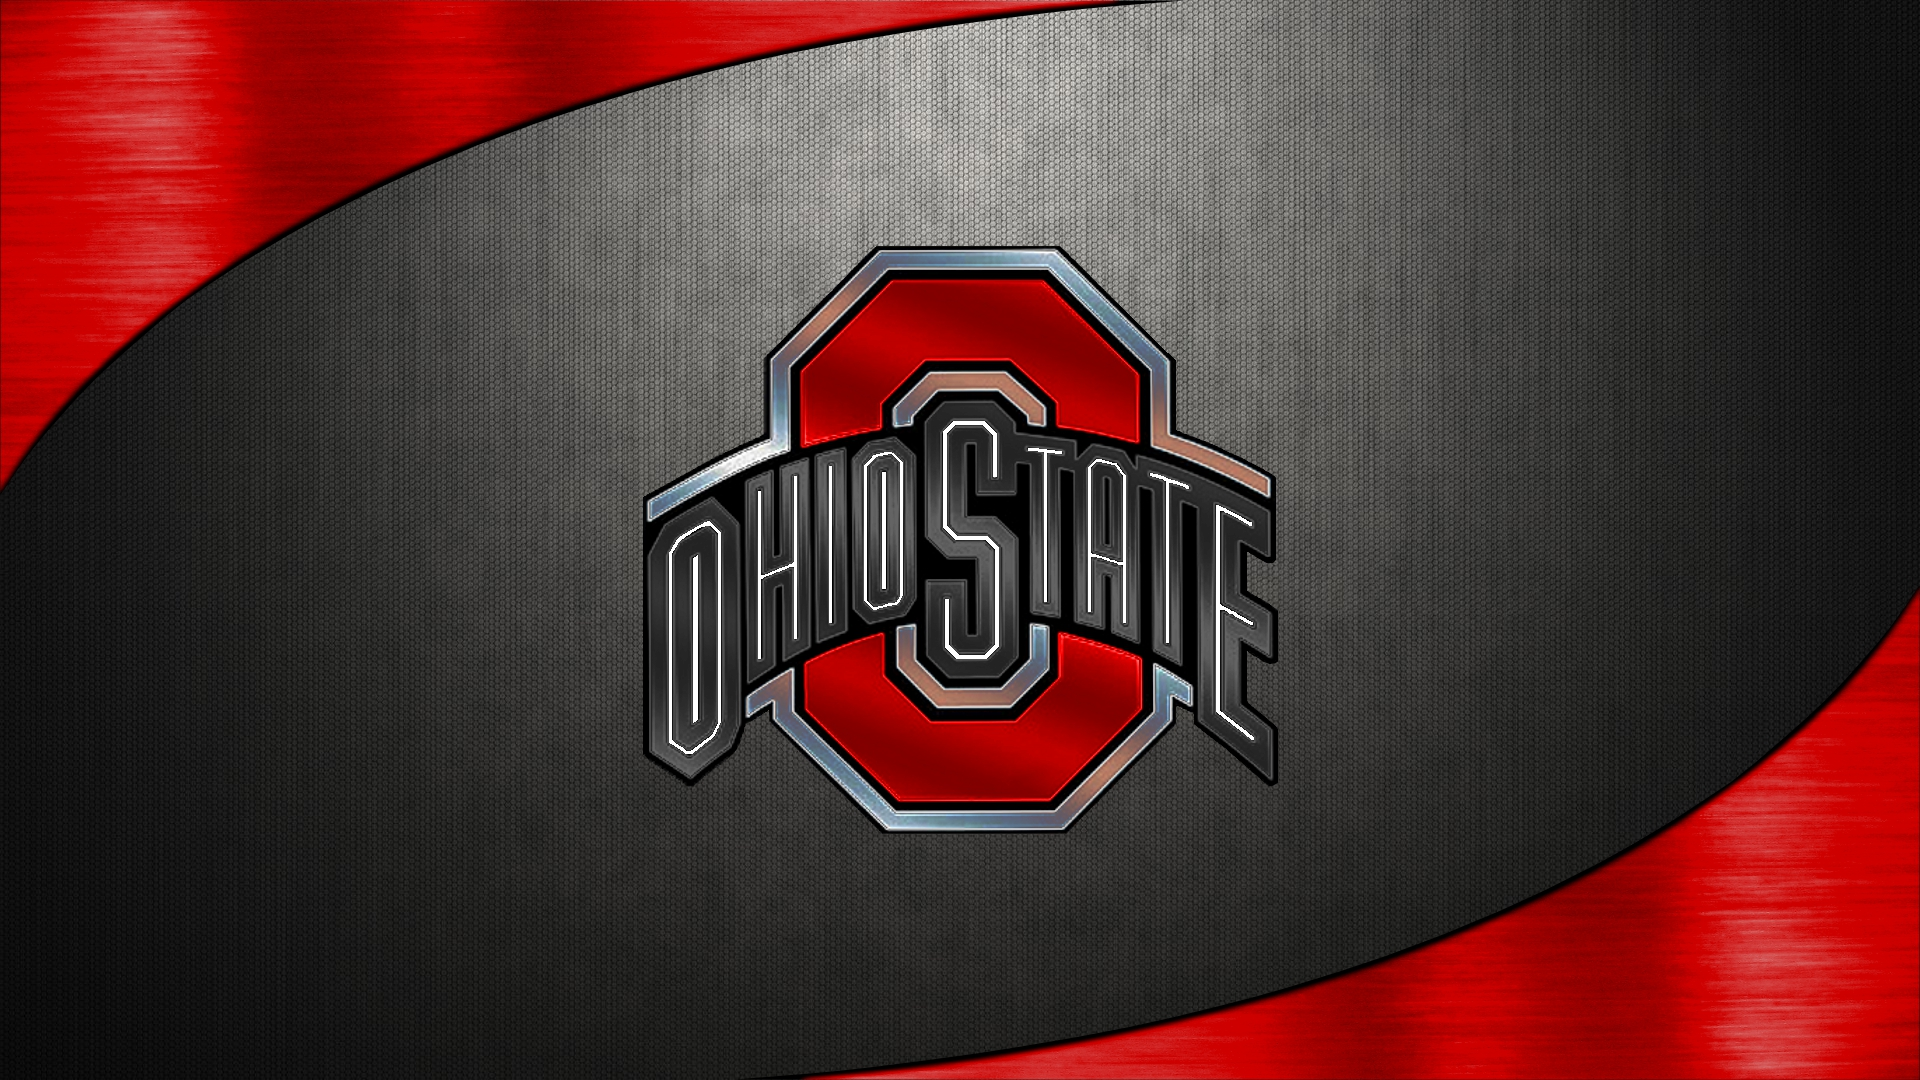 Ohio State Football images OSU Wallpaper 447 HD wallpaper 1920x1080